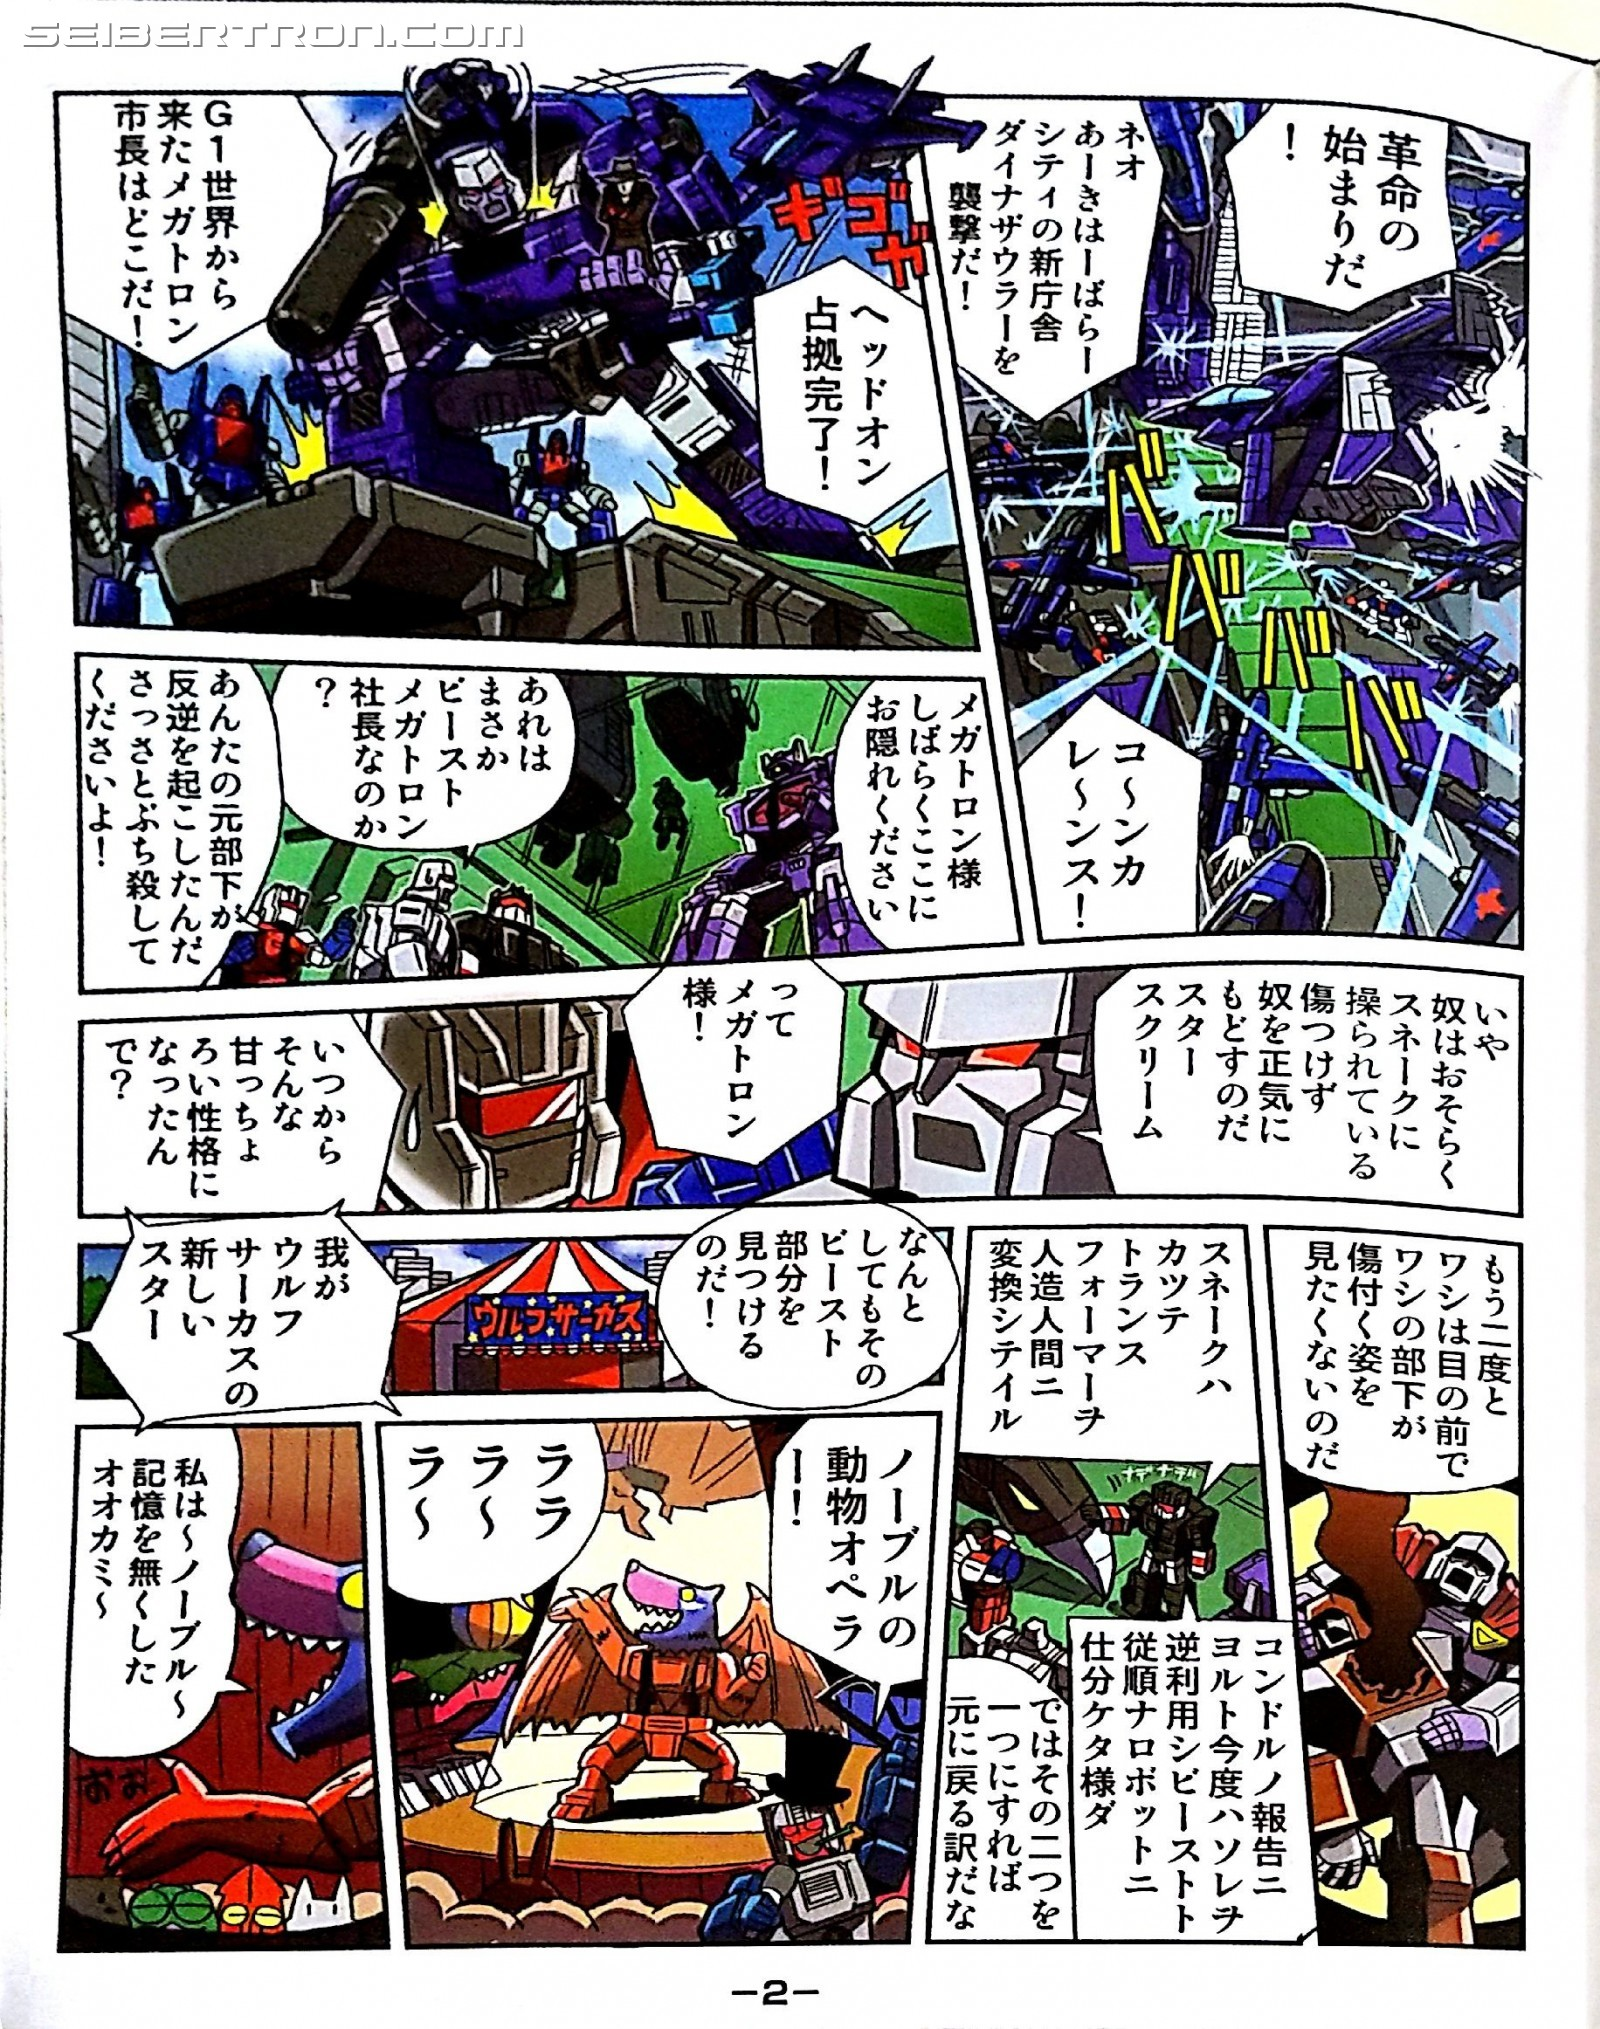 Transformers News: Scans of New Takara Transformers Legends Pack-In Manga LG61, LG62, LG63